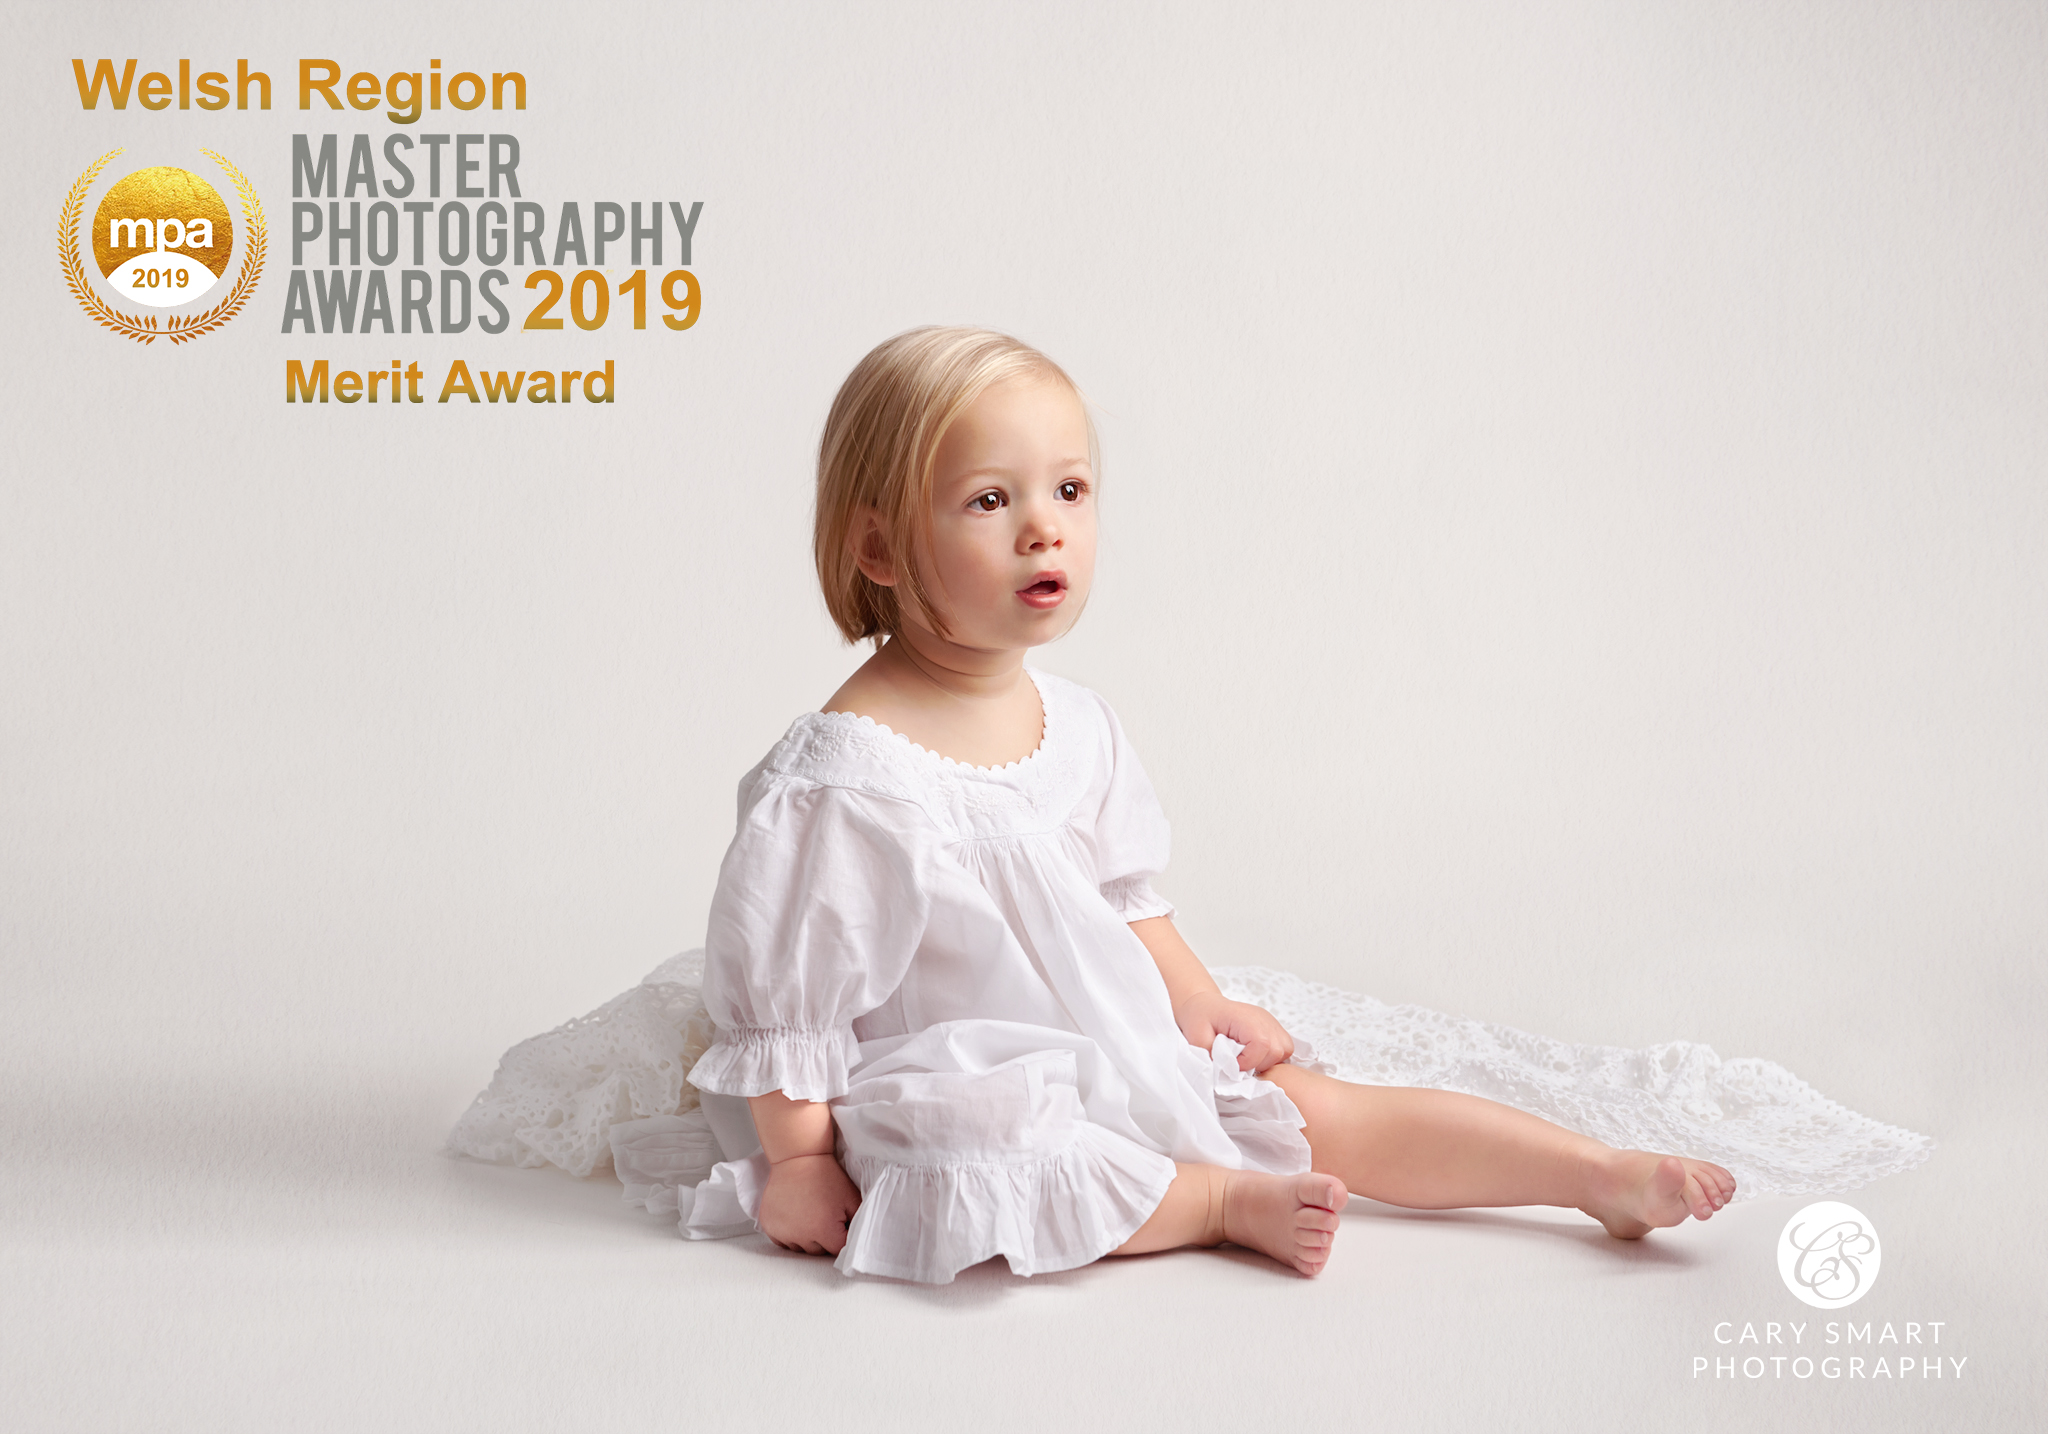 Merit Award in Category Under 5s Portrait